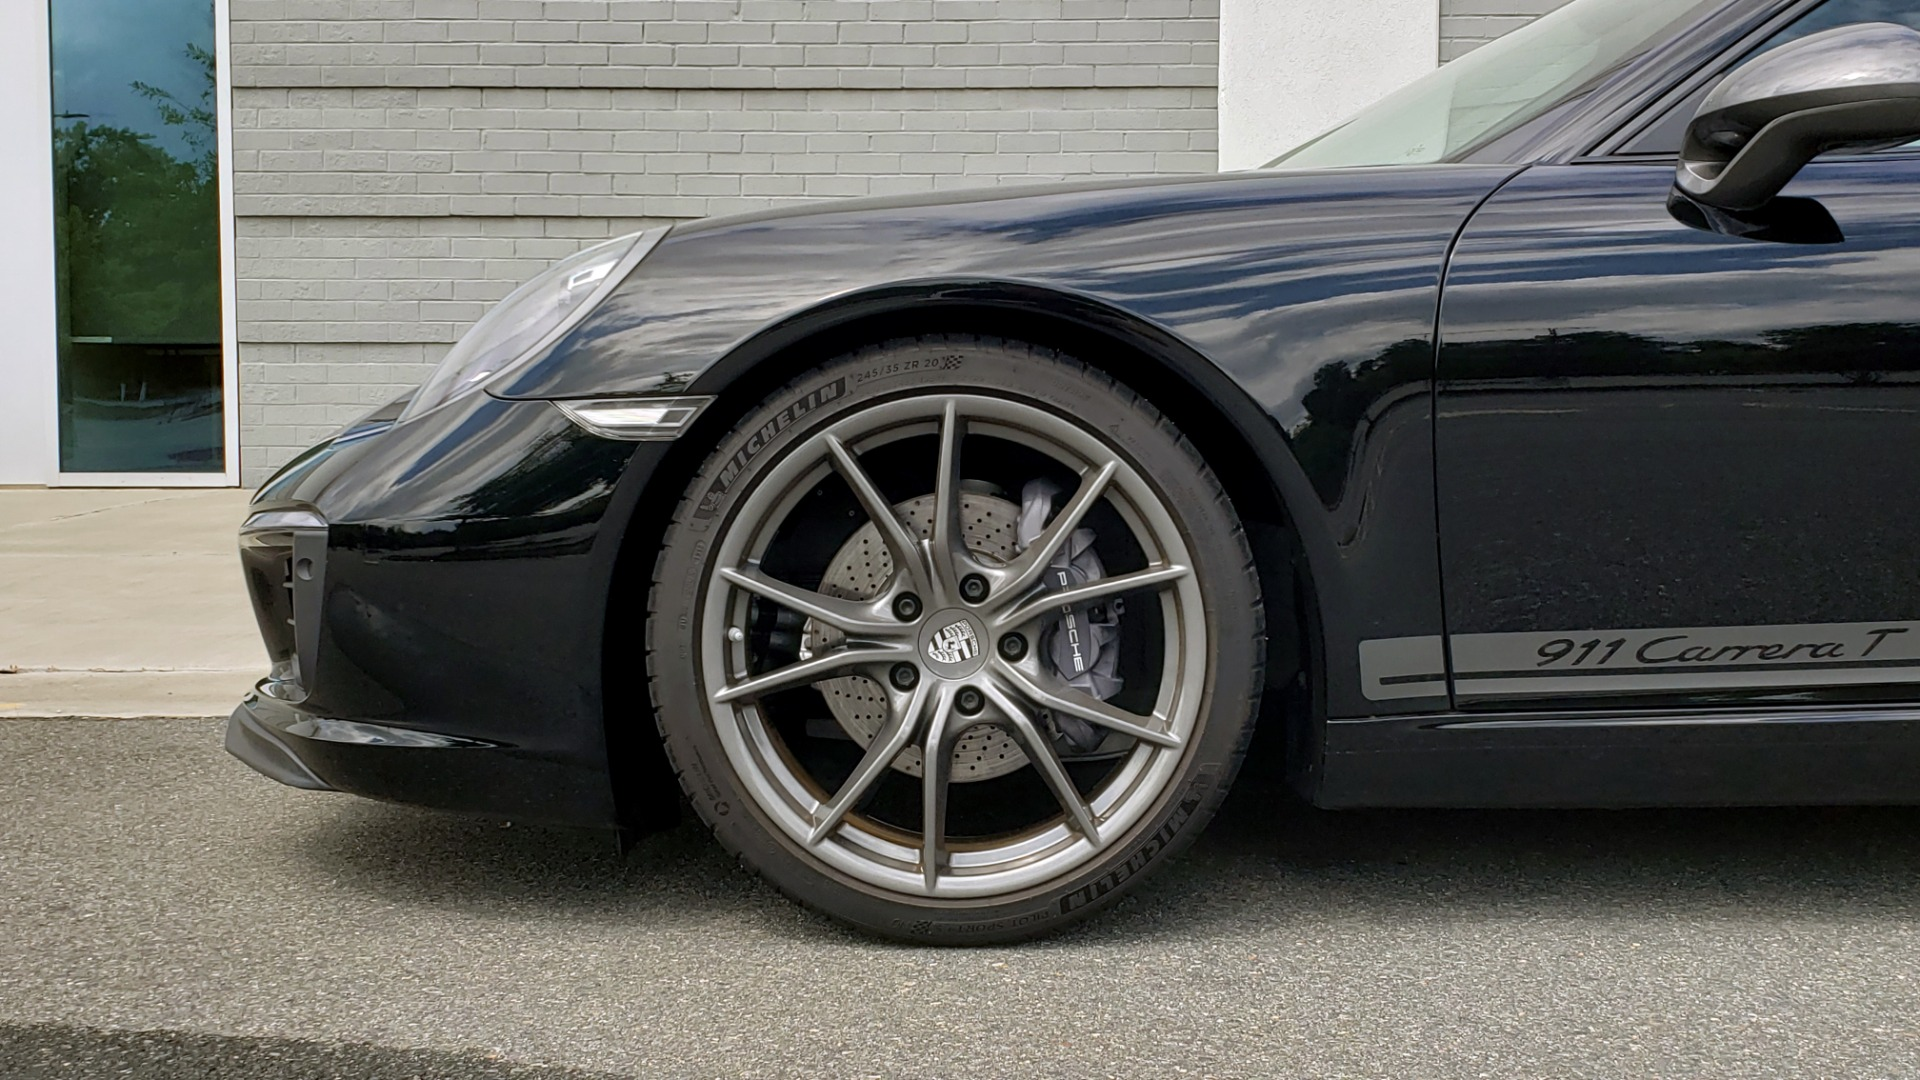 Used 2019 Porsche 911 CARRERA T / 3.0L H6 / MANUAL / PREMIUM / NAV / BOSE / SUNROOF / REARVIEW for sale $117,000 at Formula Imports in Charlotte NC 28227 80